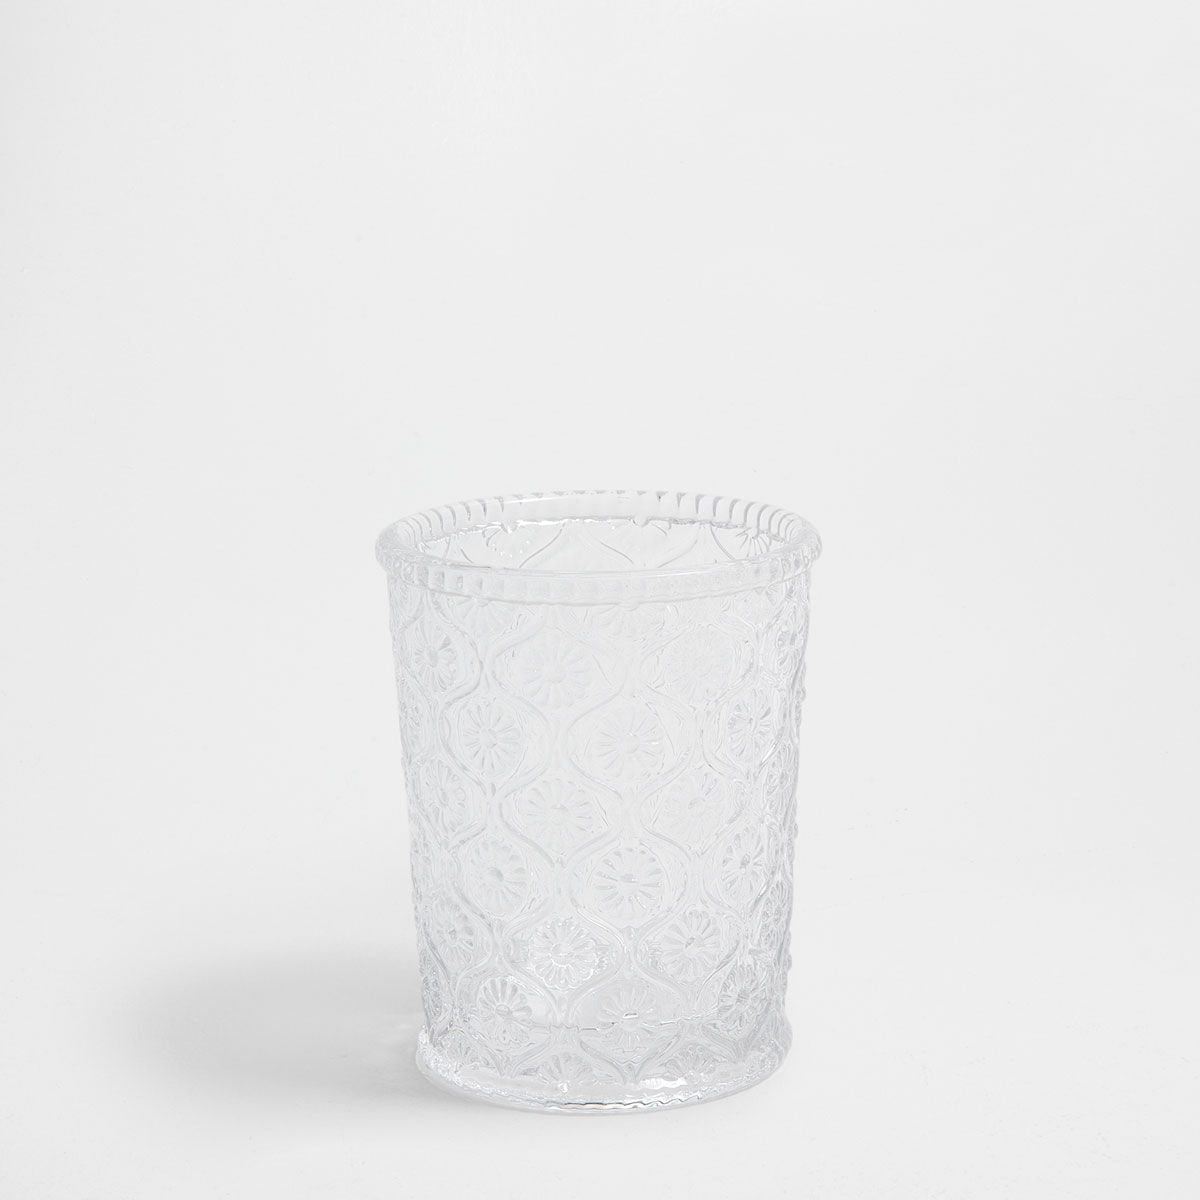 Image 1 of the product Raised floral glass tumbler